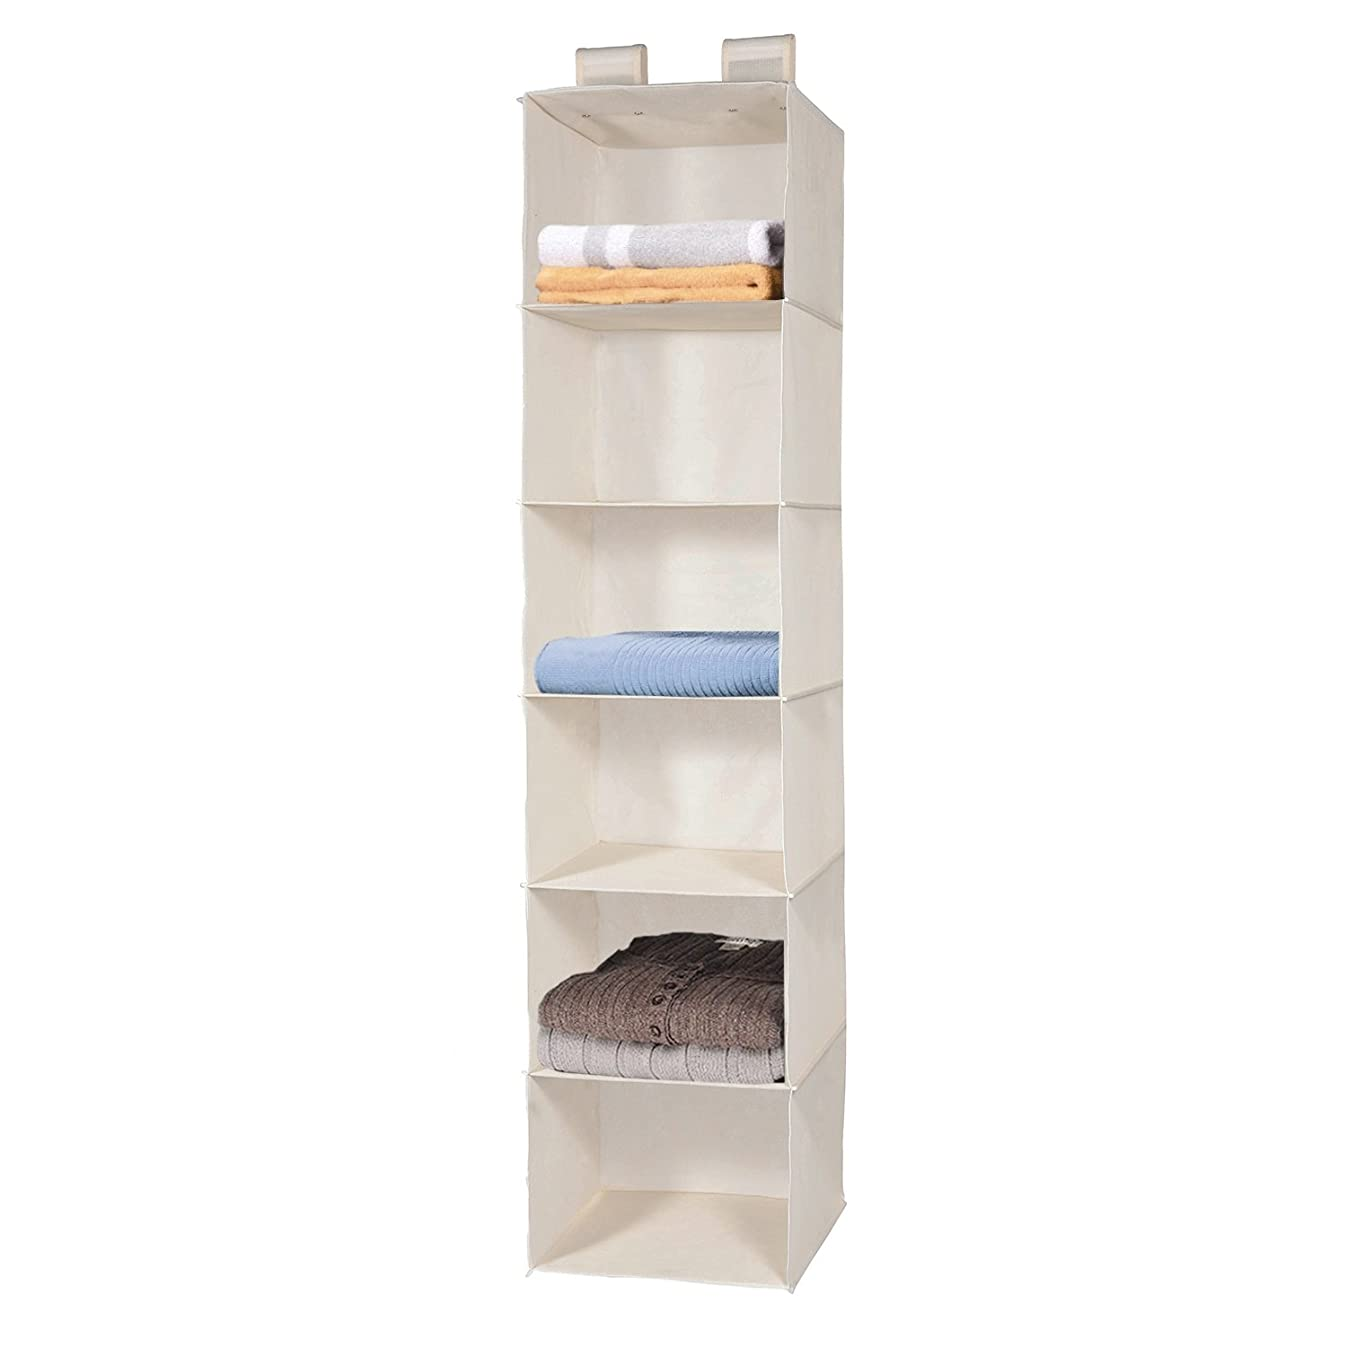 MaidMAX 6 Tiers Cloth Hanging Shelf for Closet Organizer with 2 Widen Straps, Foldable, Beige, 51.5 Inches High